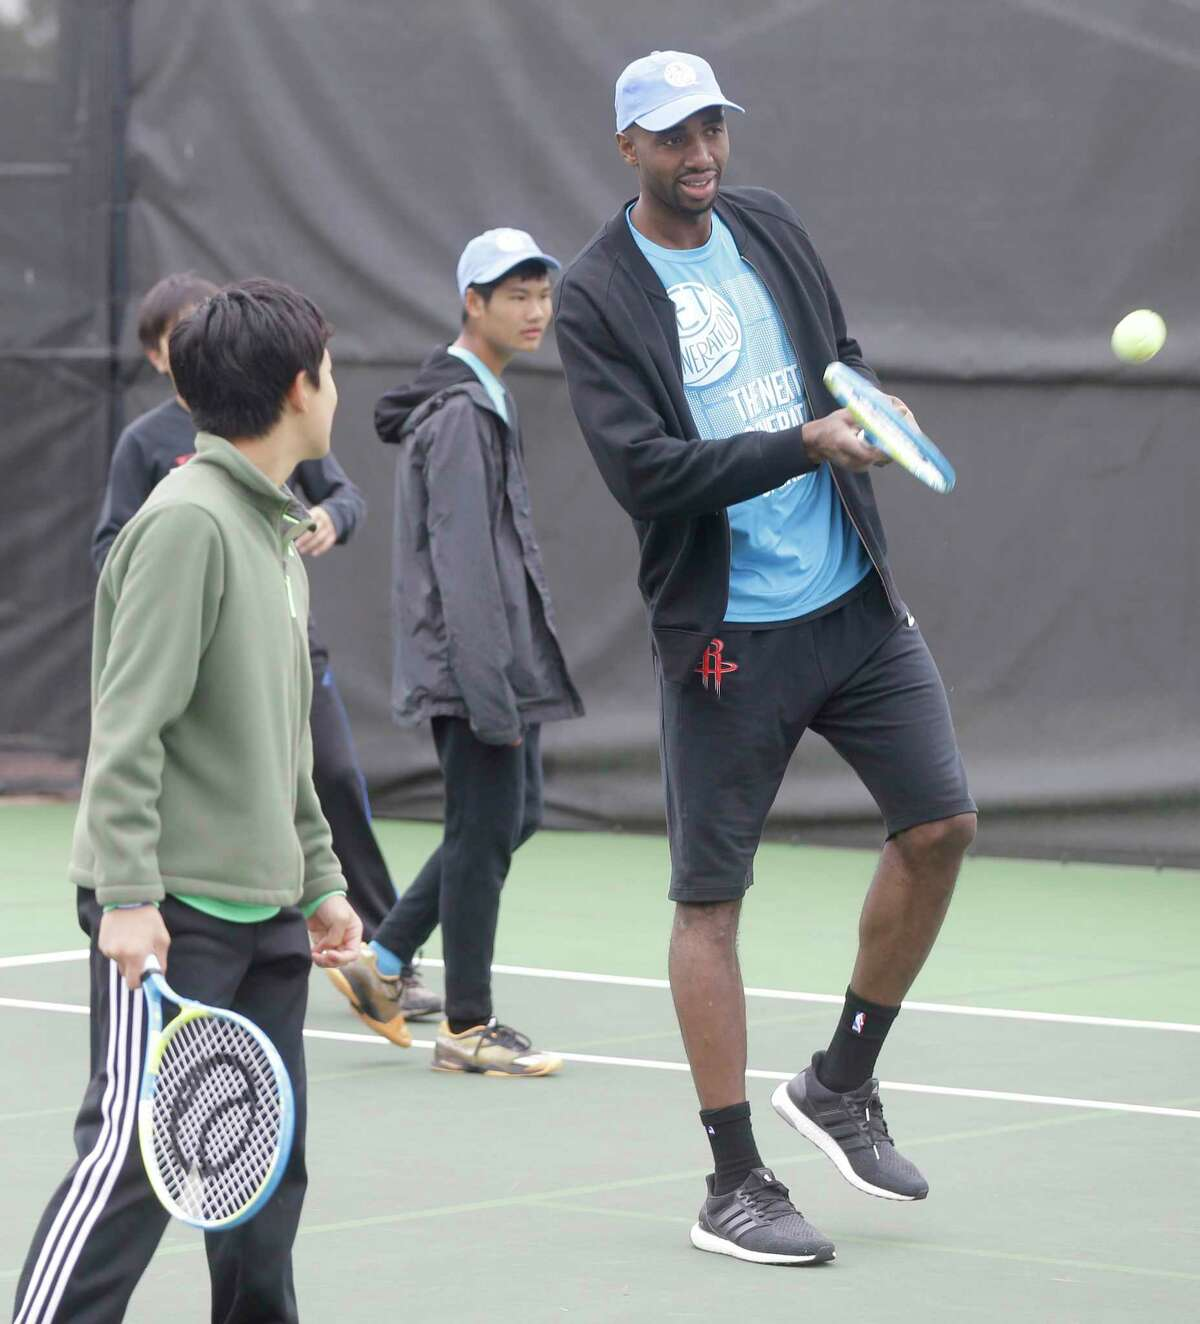 Houston Rockets player Luc Mbah a Moute participates at the Kids Day event during the U.S. Men's Clay Court Championship at River Oaks Country Club, 1600 River Oaks Blvd., Sunday, April 8, 2018, in Houston.